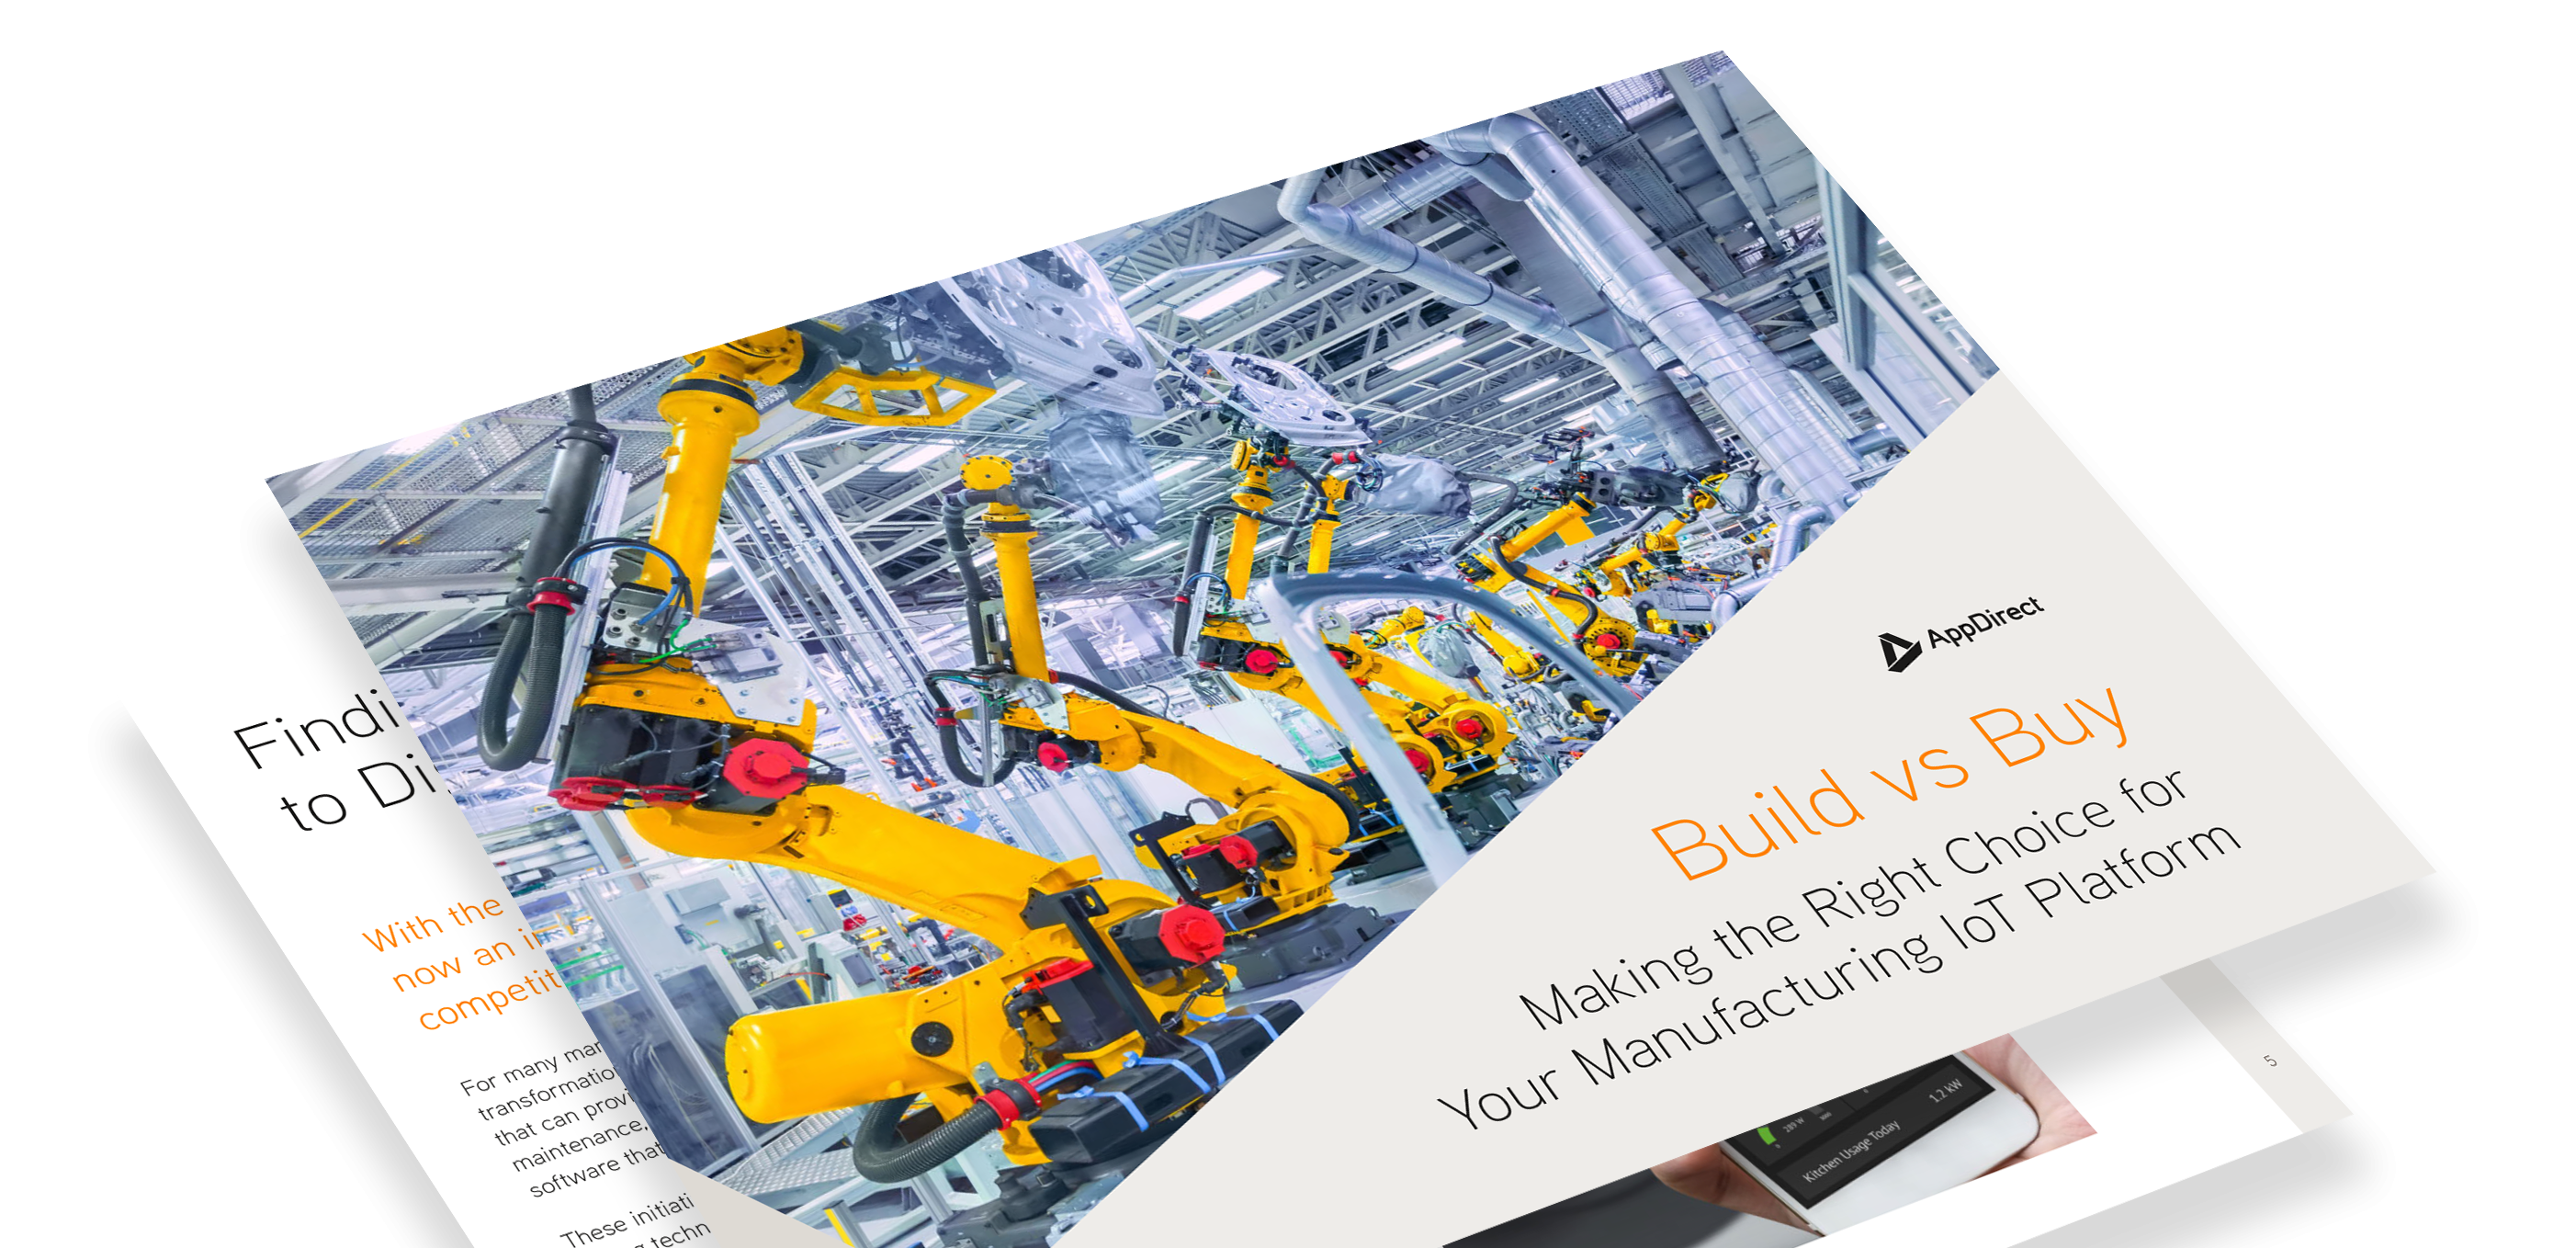 Build vs Buy: Making the Right Choice for Your Manufacturing IoT Platform